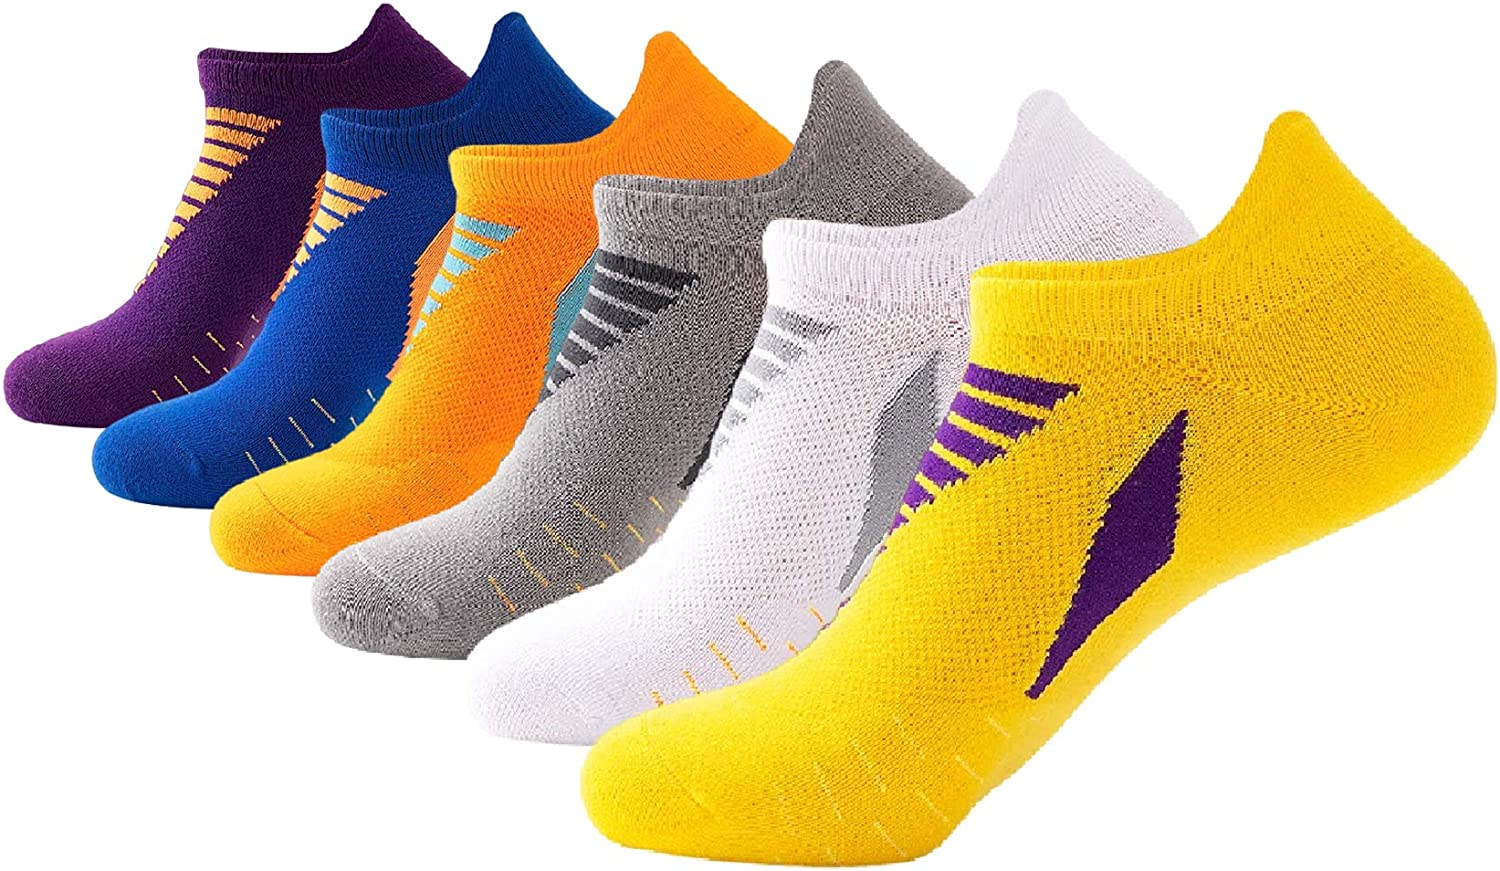 Maochcoi Womens 6-Pack Low Cut Ankle Socks Athletic Running Sports Cushioned Breathable Performance Socks